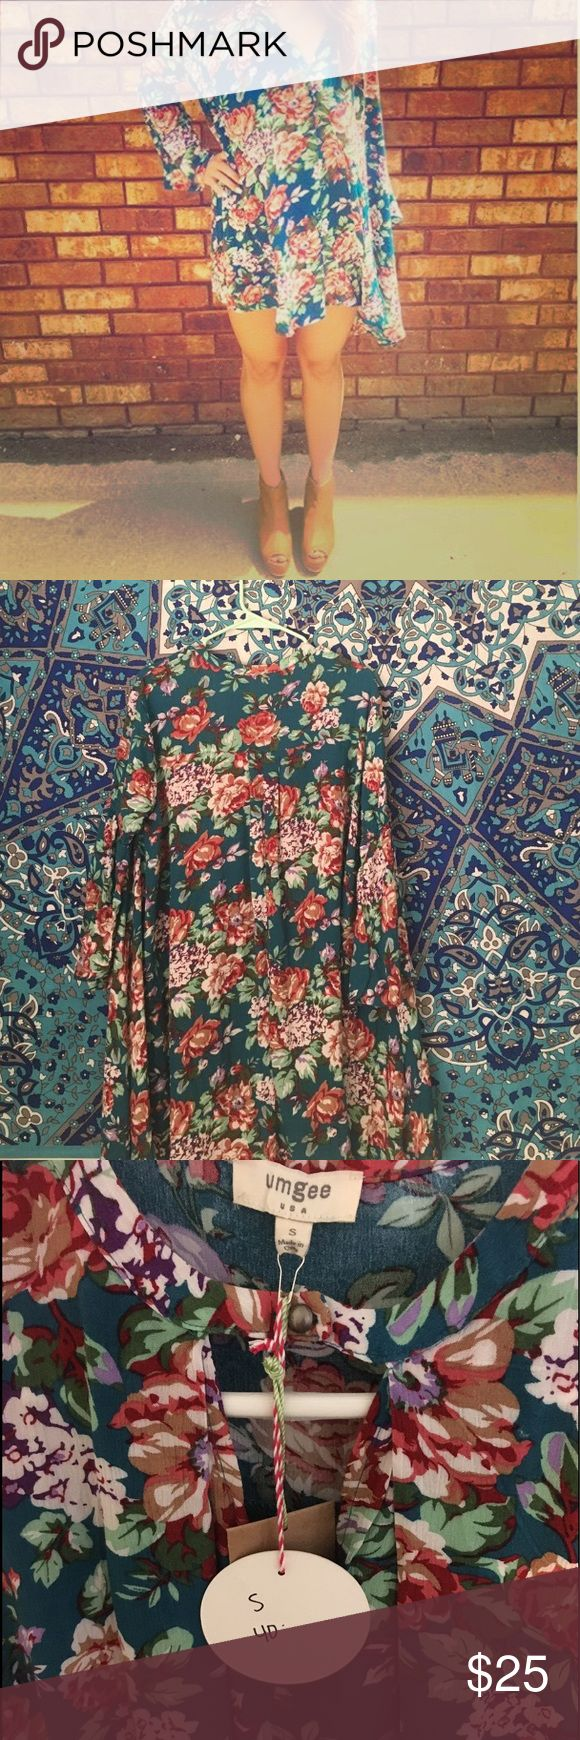 "MUMU look-alike dress NWT. Feminine & Flowy. Pretty floral pattern. I'm 5'5"" and it's the perfect length; wouldn't recommend for anyone too much taller. Would fit sizes small-medium. Purchased from the Reef boutique. Umgee Dresses Mini"